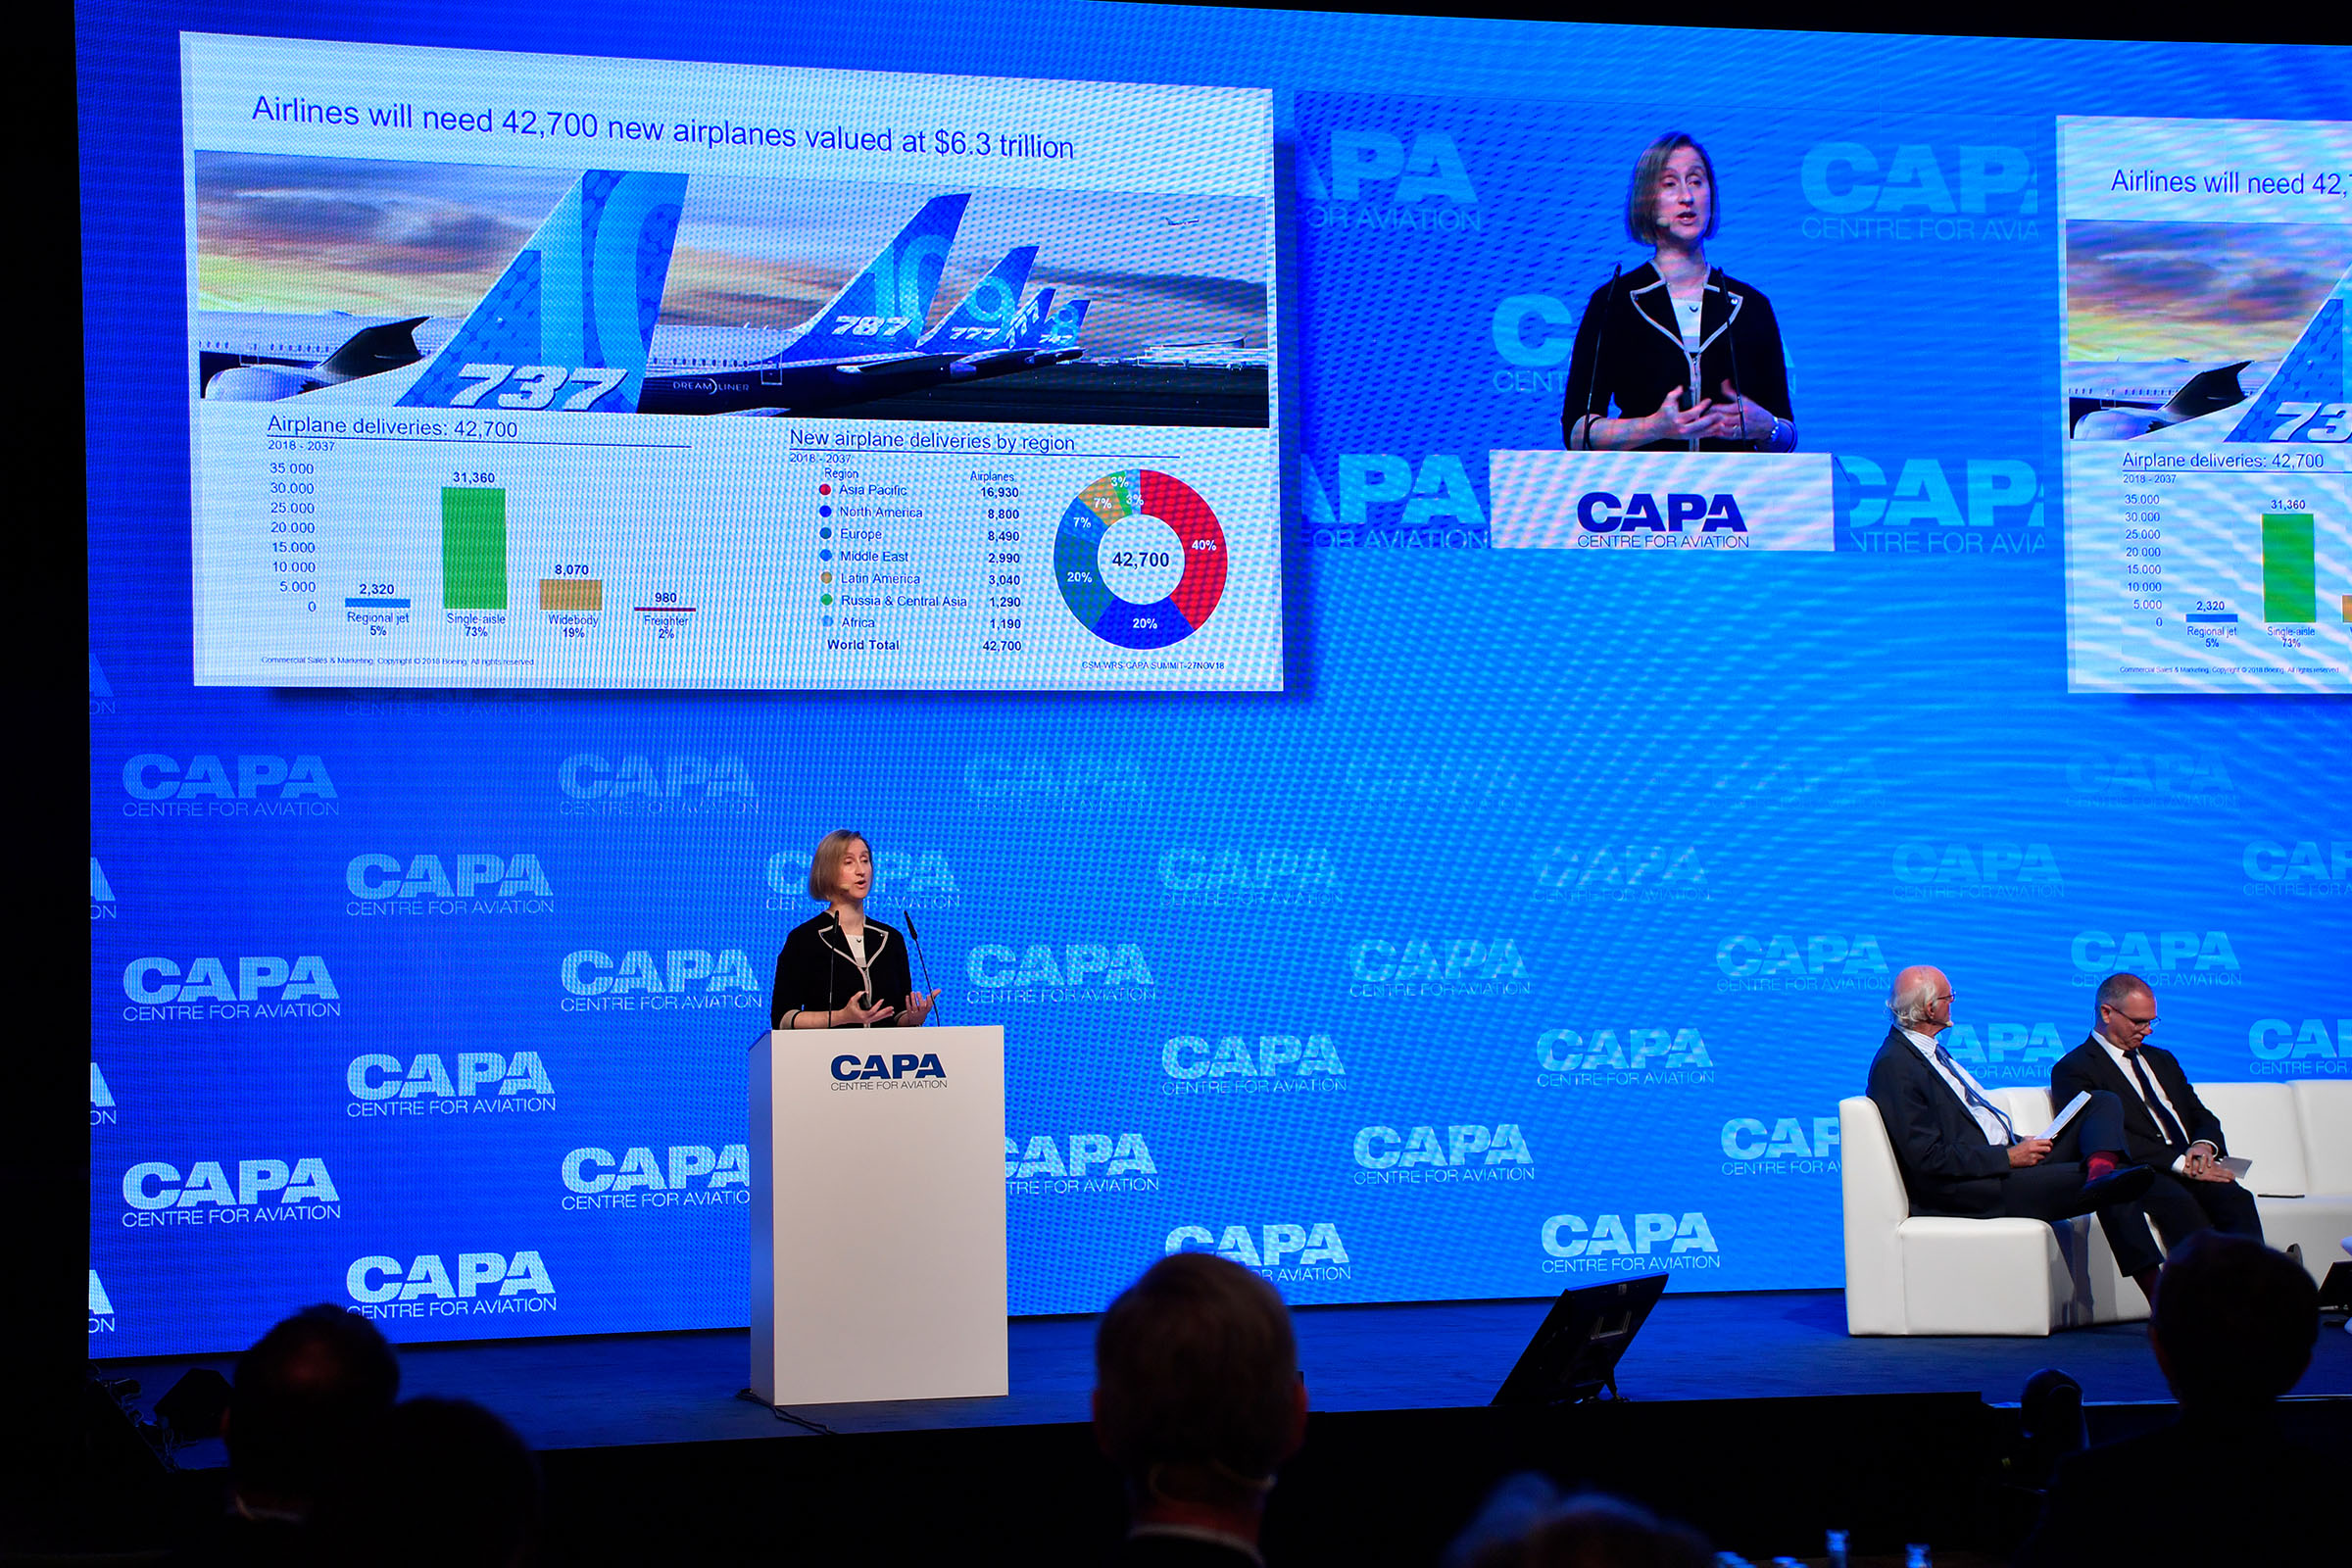 CAPA World Aviation Outlook Summit | CAPA